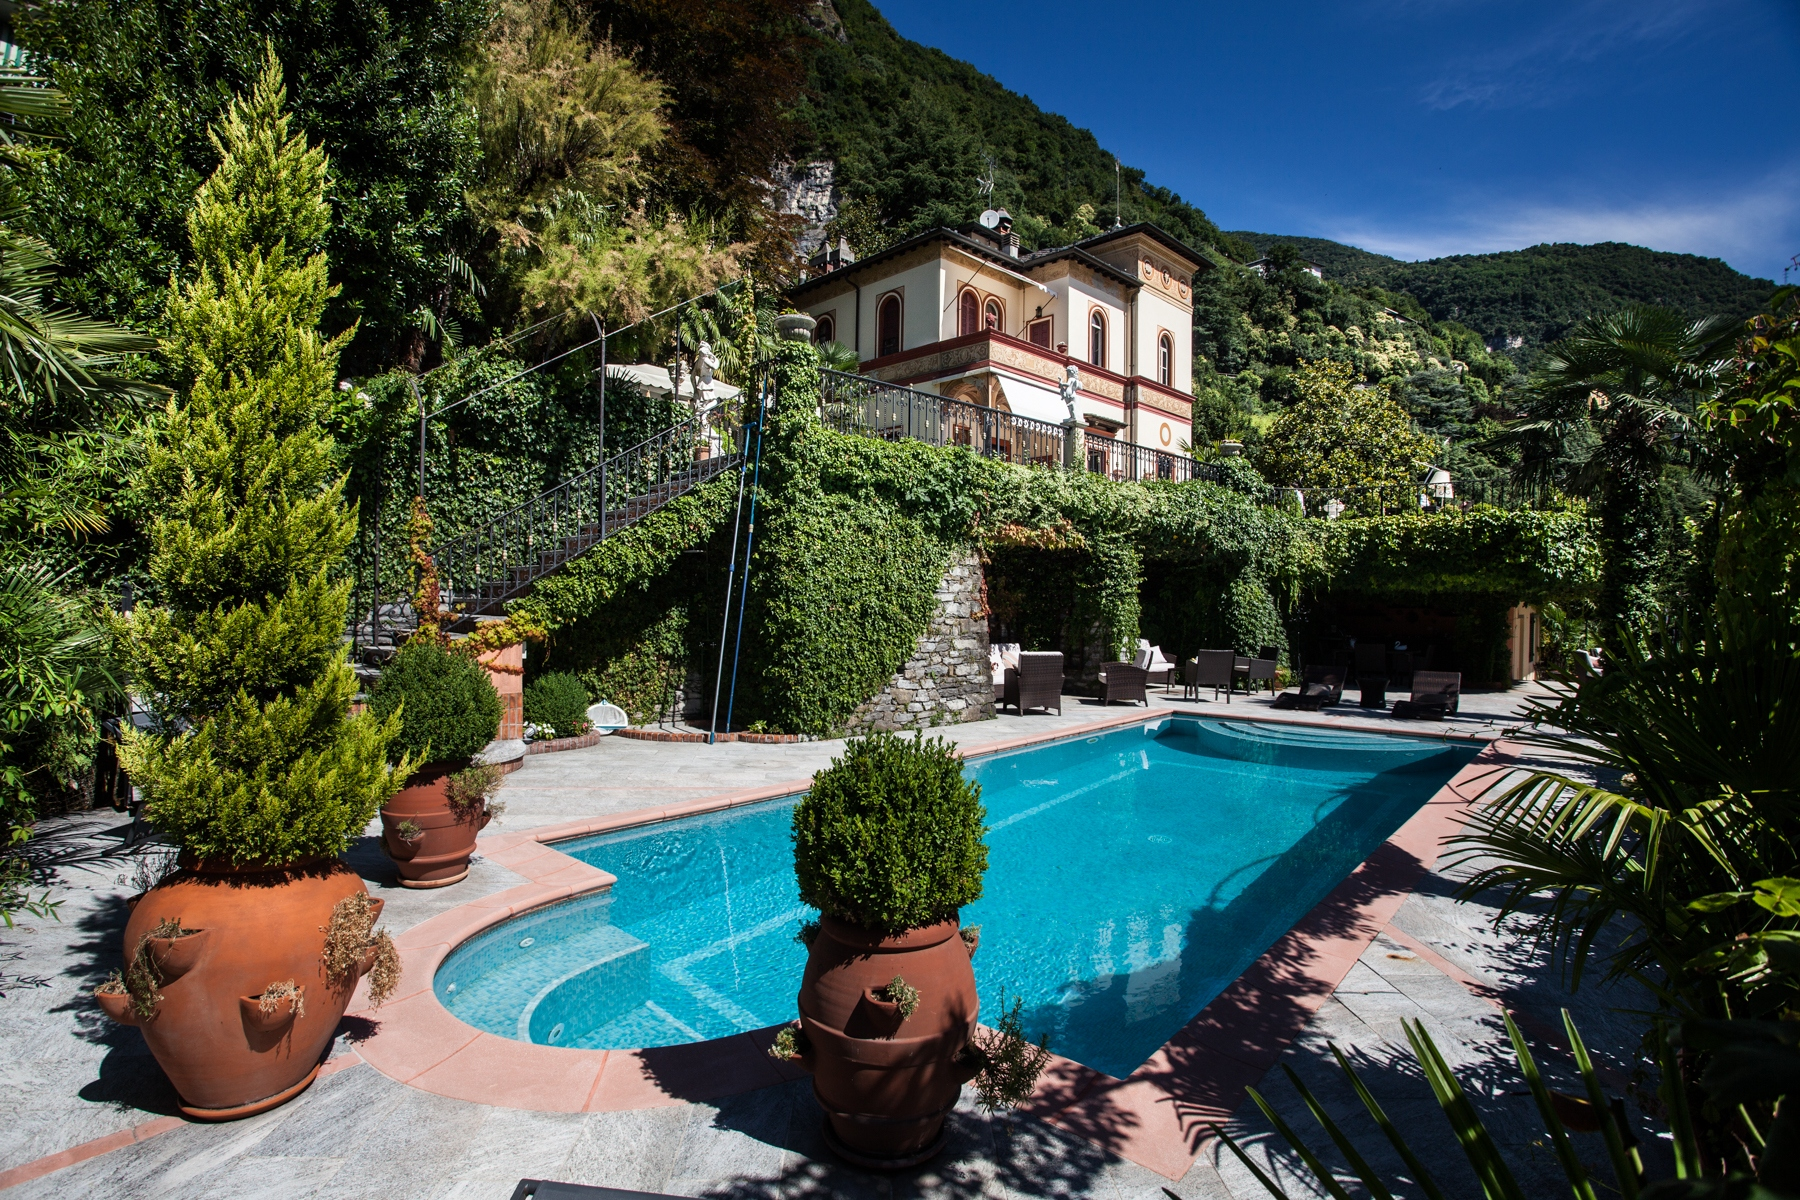 Property for Sale at Charming historic villa with private park Moltrasio, Como Italy